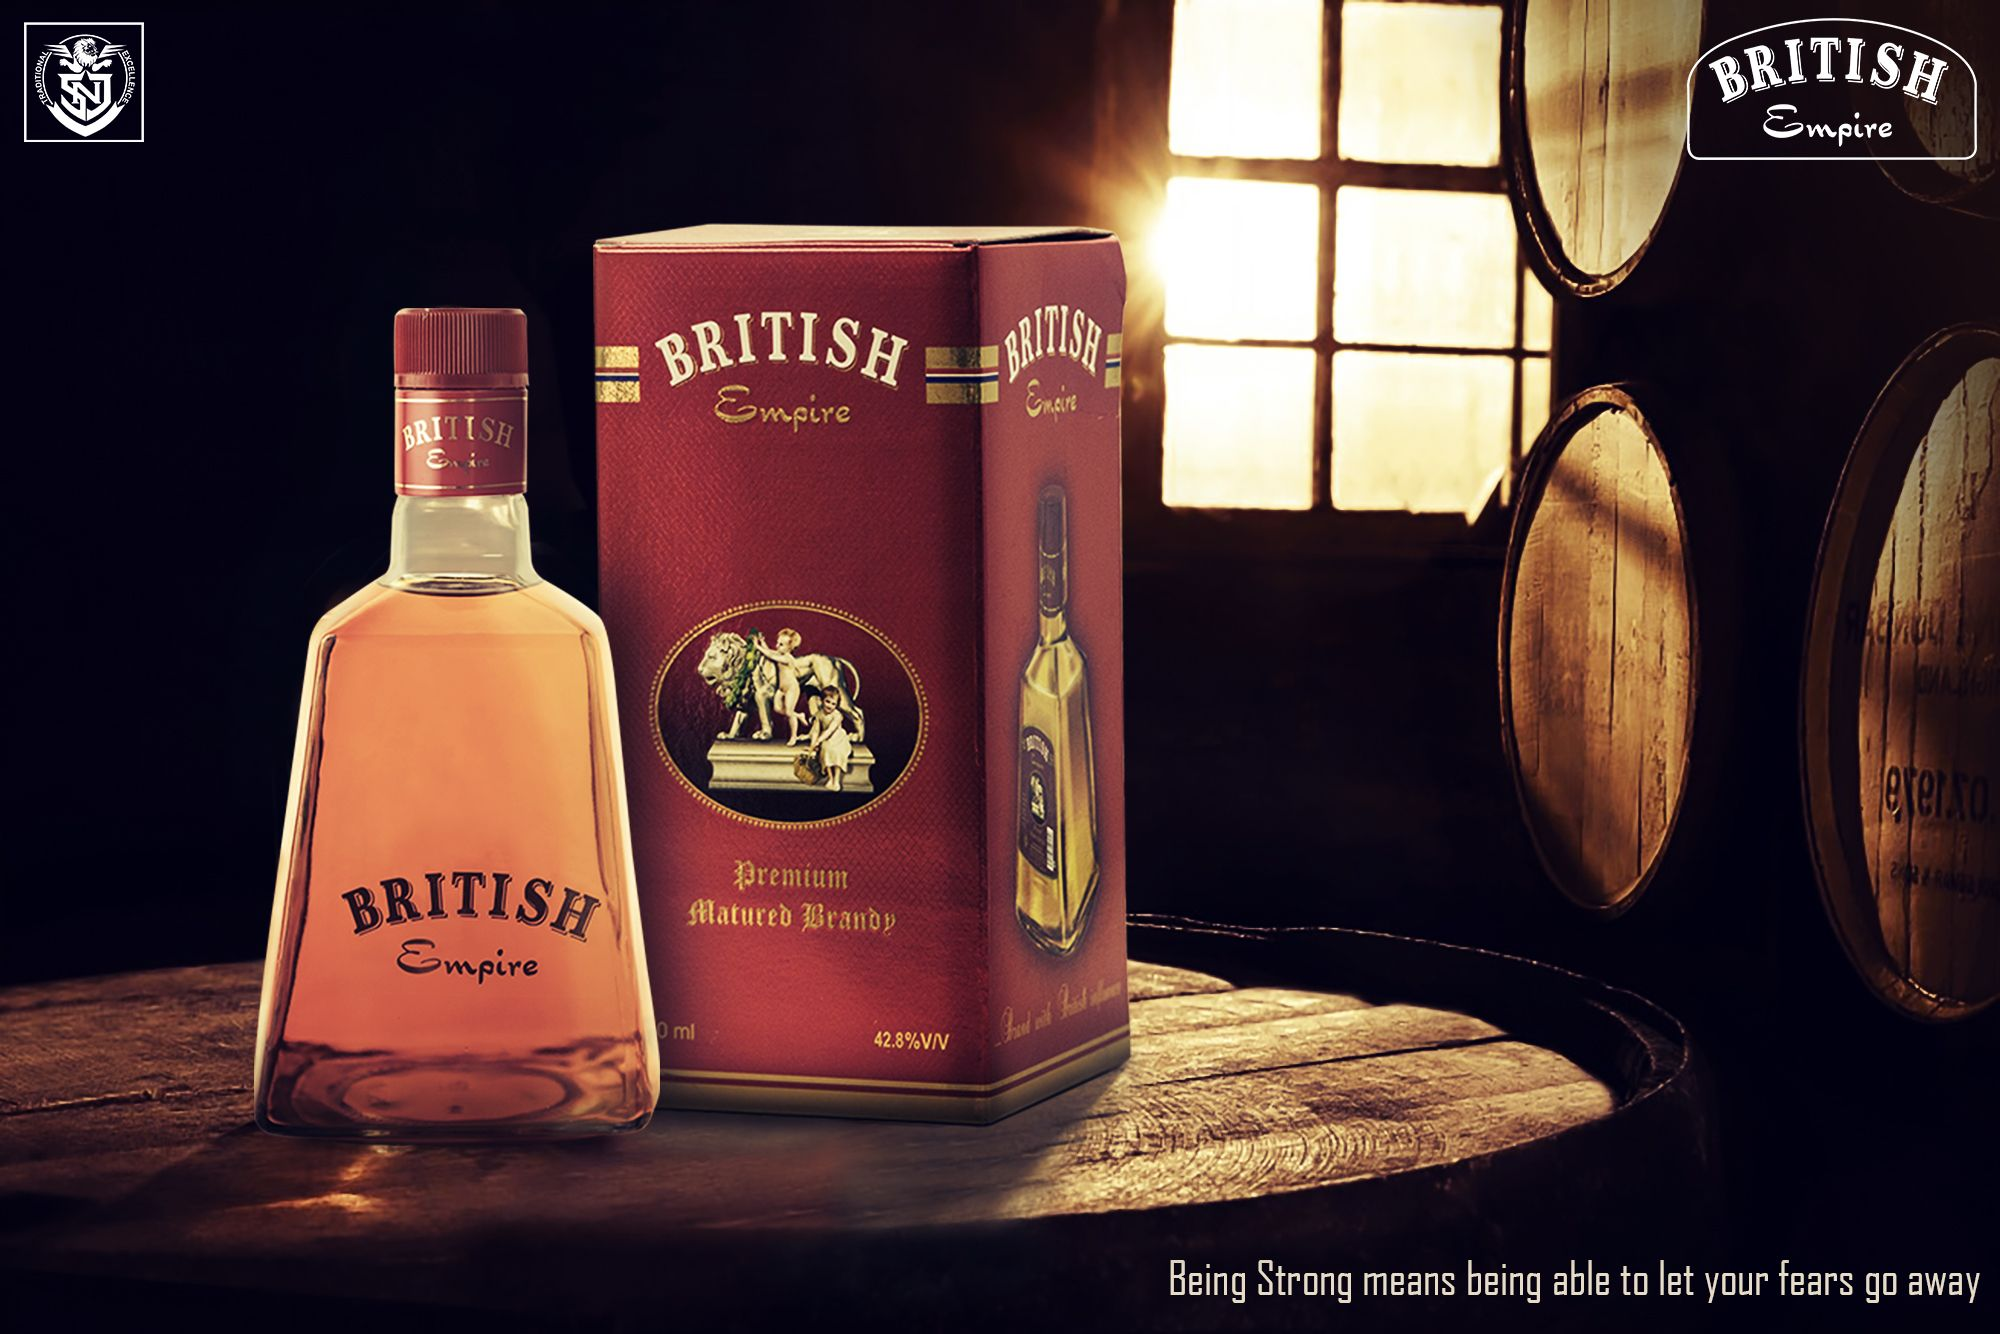 Being Strong Means Being Able To Let Your Fears Go Away Britishempire Premiumbrandy Bravetales Snj Britishempi Wine Bottle Whiskey Bottle Rose Wine Bottle